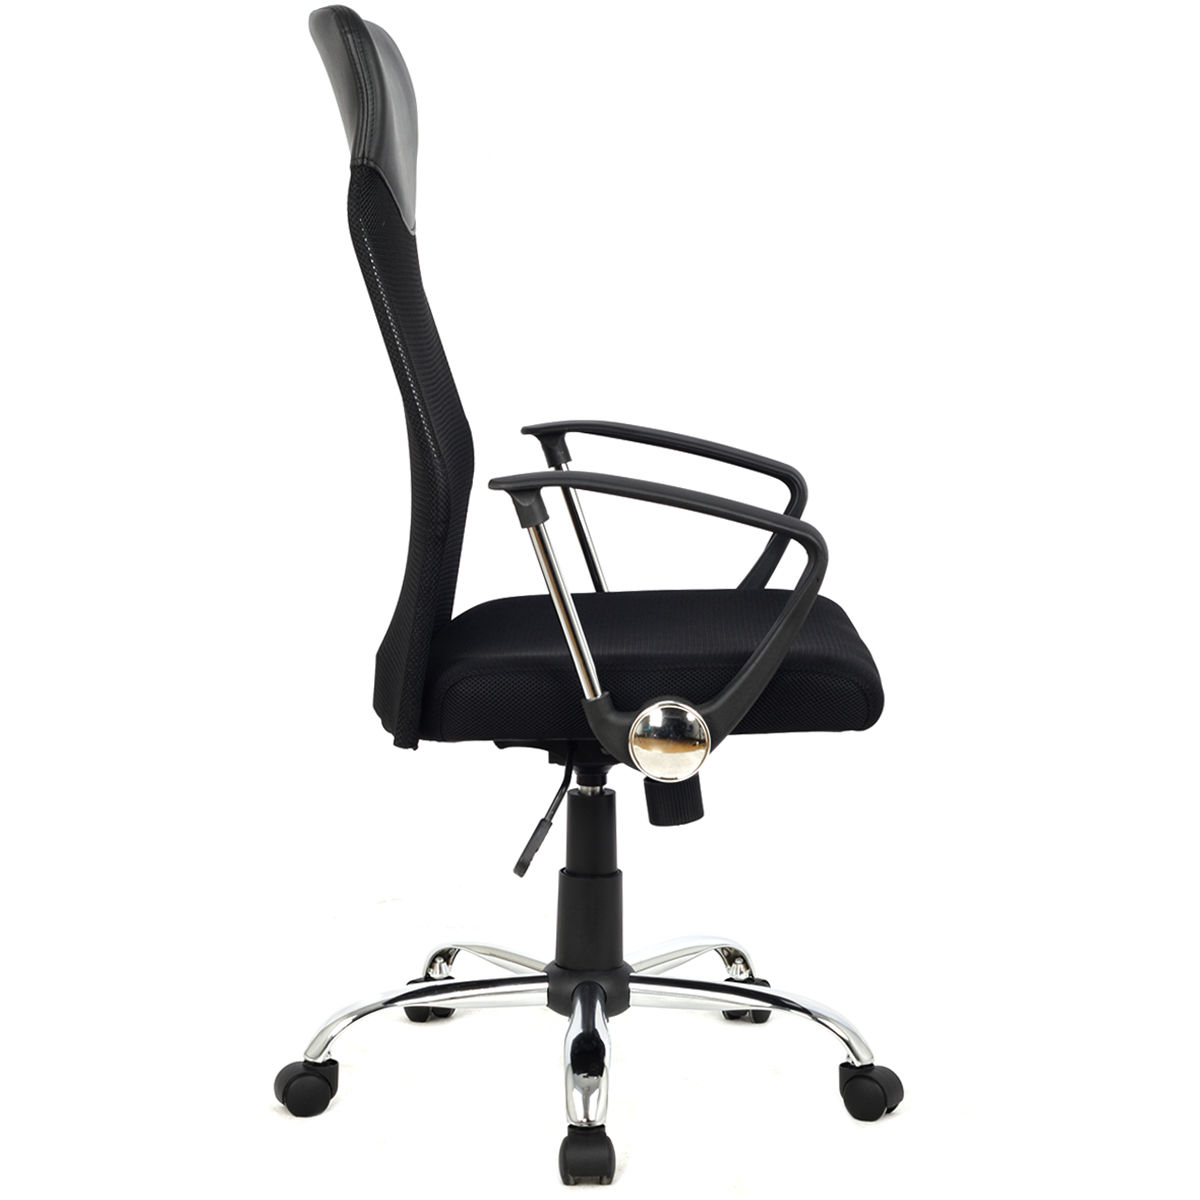 Modern ergonomic office chairs - Costway Modern Ergonomic Mesh High Back Executive Computer Desk Task Office Chair Black Walmart Com